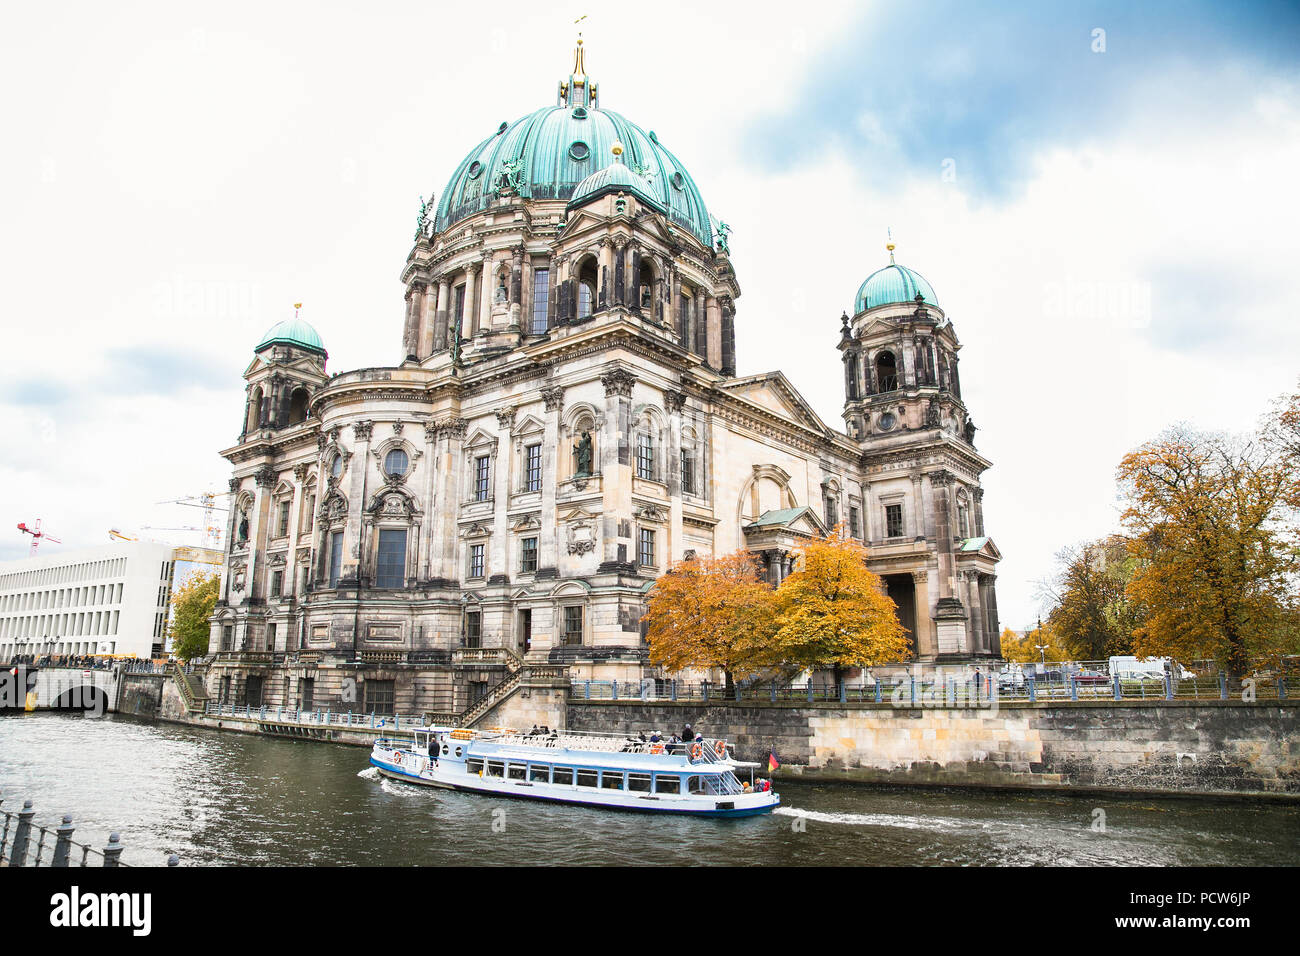 Beautiful view of Berliner Dom (Berlin Cathedral) at famous Museumsinsel (Museum Island) with excursion boat on Spree river in beautiful evening light - Stock Image